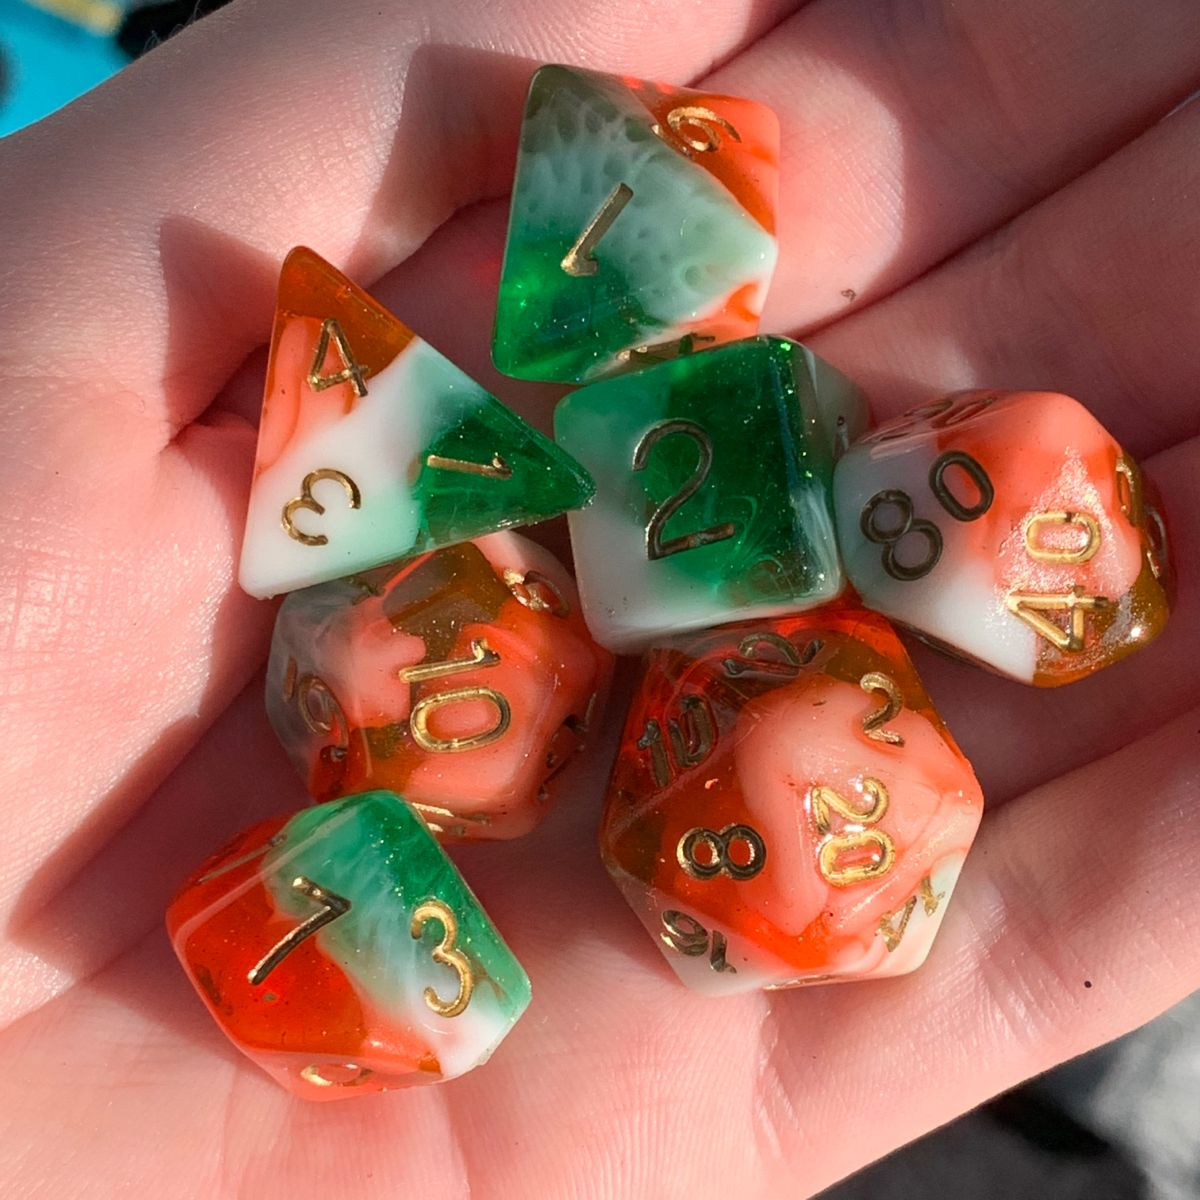 Pin By Rhylie Collins On Dice (With Images)